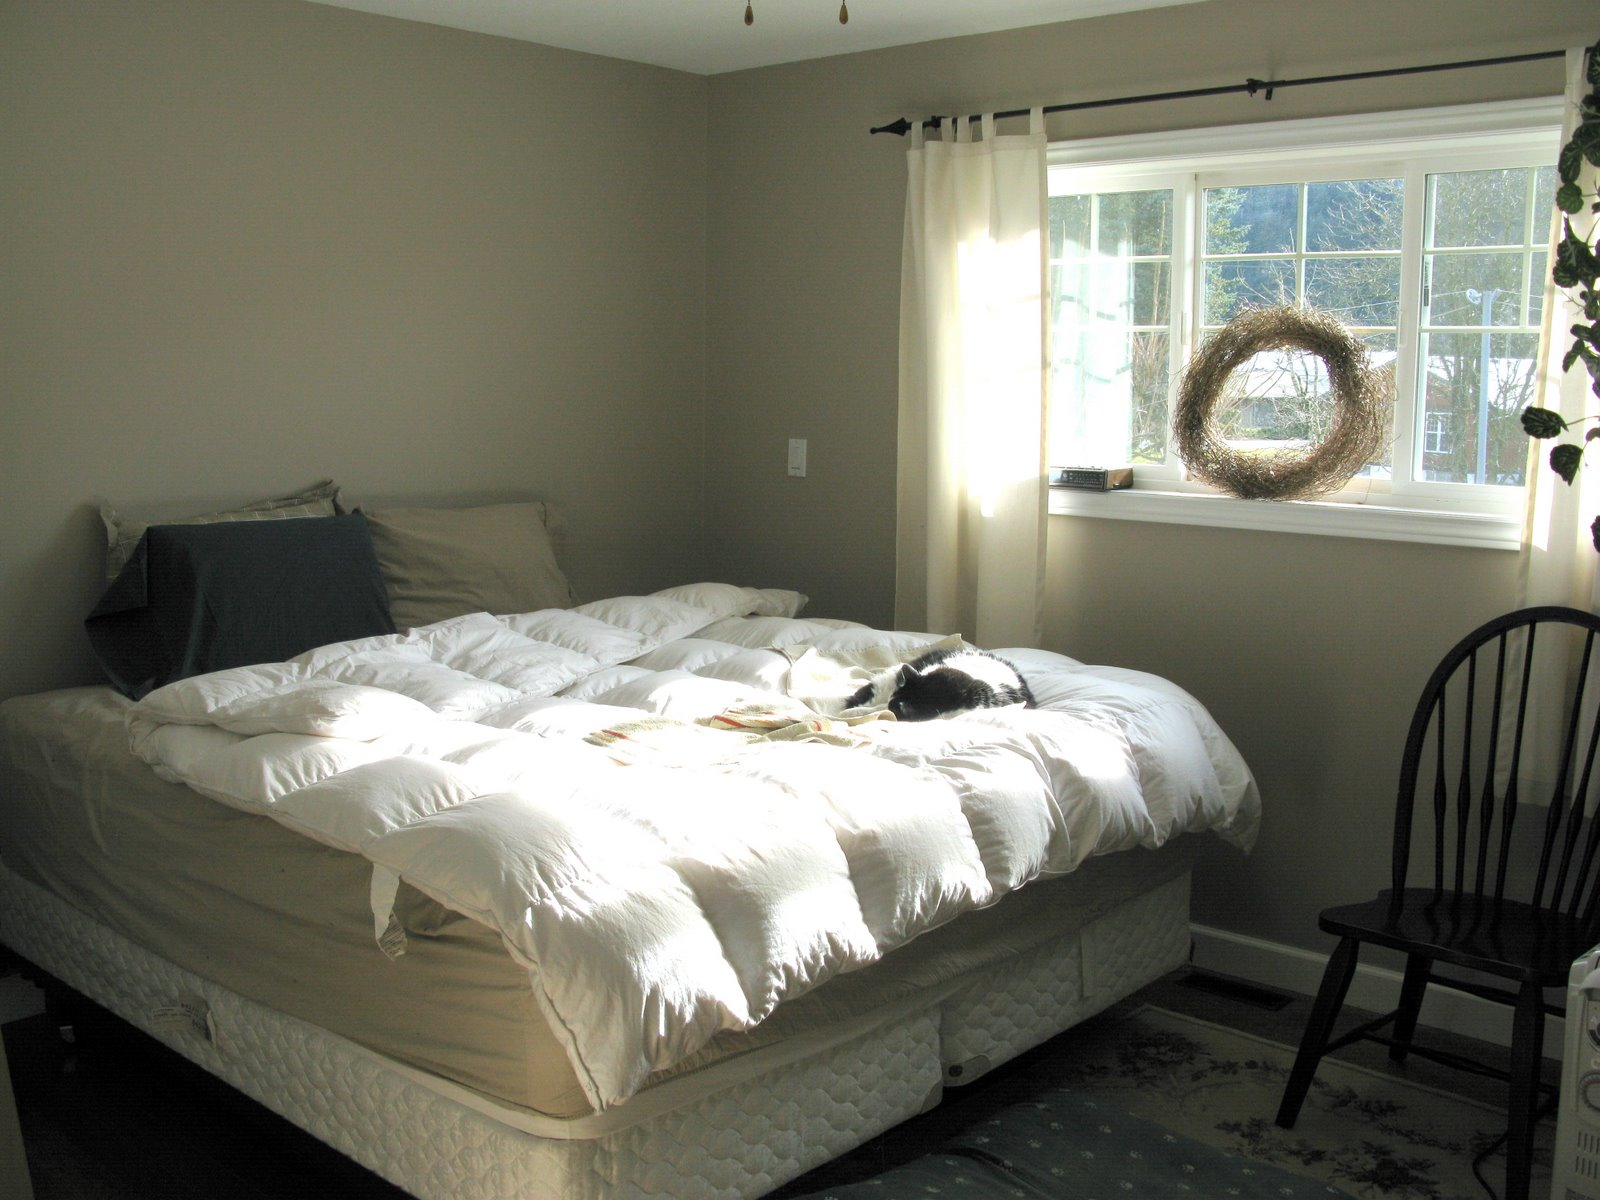 A Salvaged White Trash Bedroom Makeover From Burn Pile